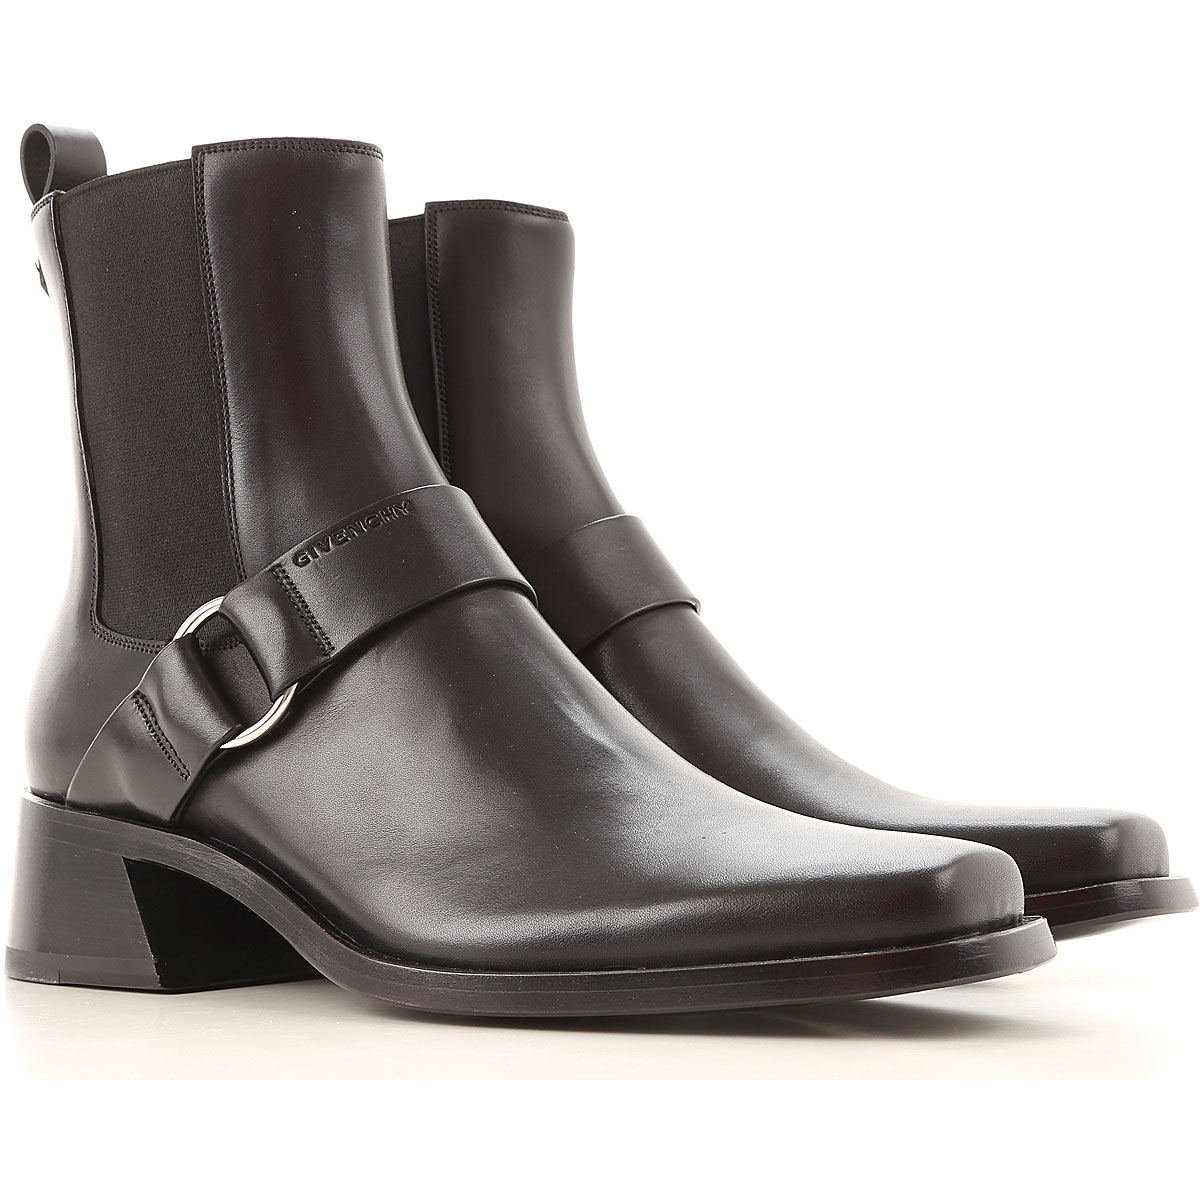 Givenchy Chelsea Boots for Men On Sale, Black, Leather, 2019, 10 7.5 7.75 8 8.5 9